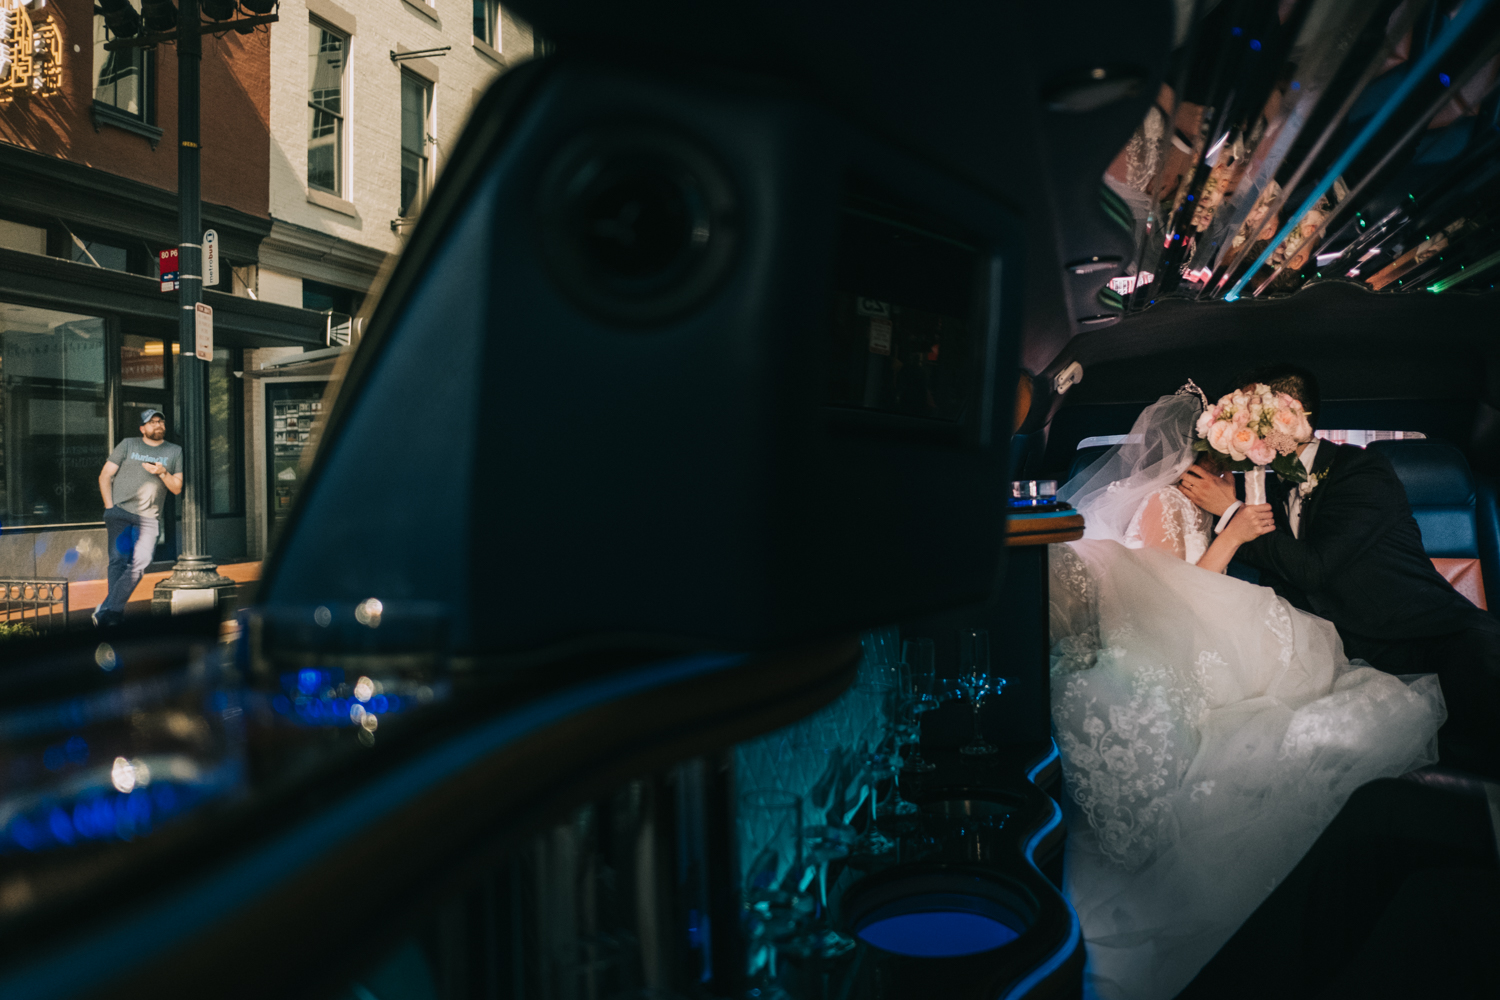 DC wedding couple in a Limo as street bystander looks on